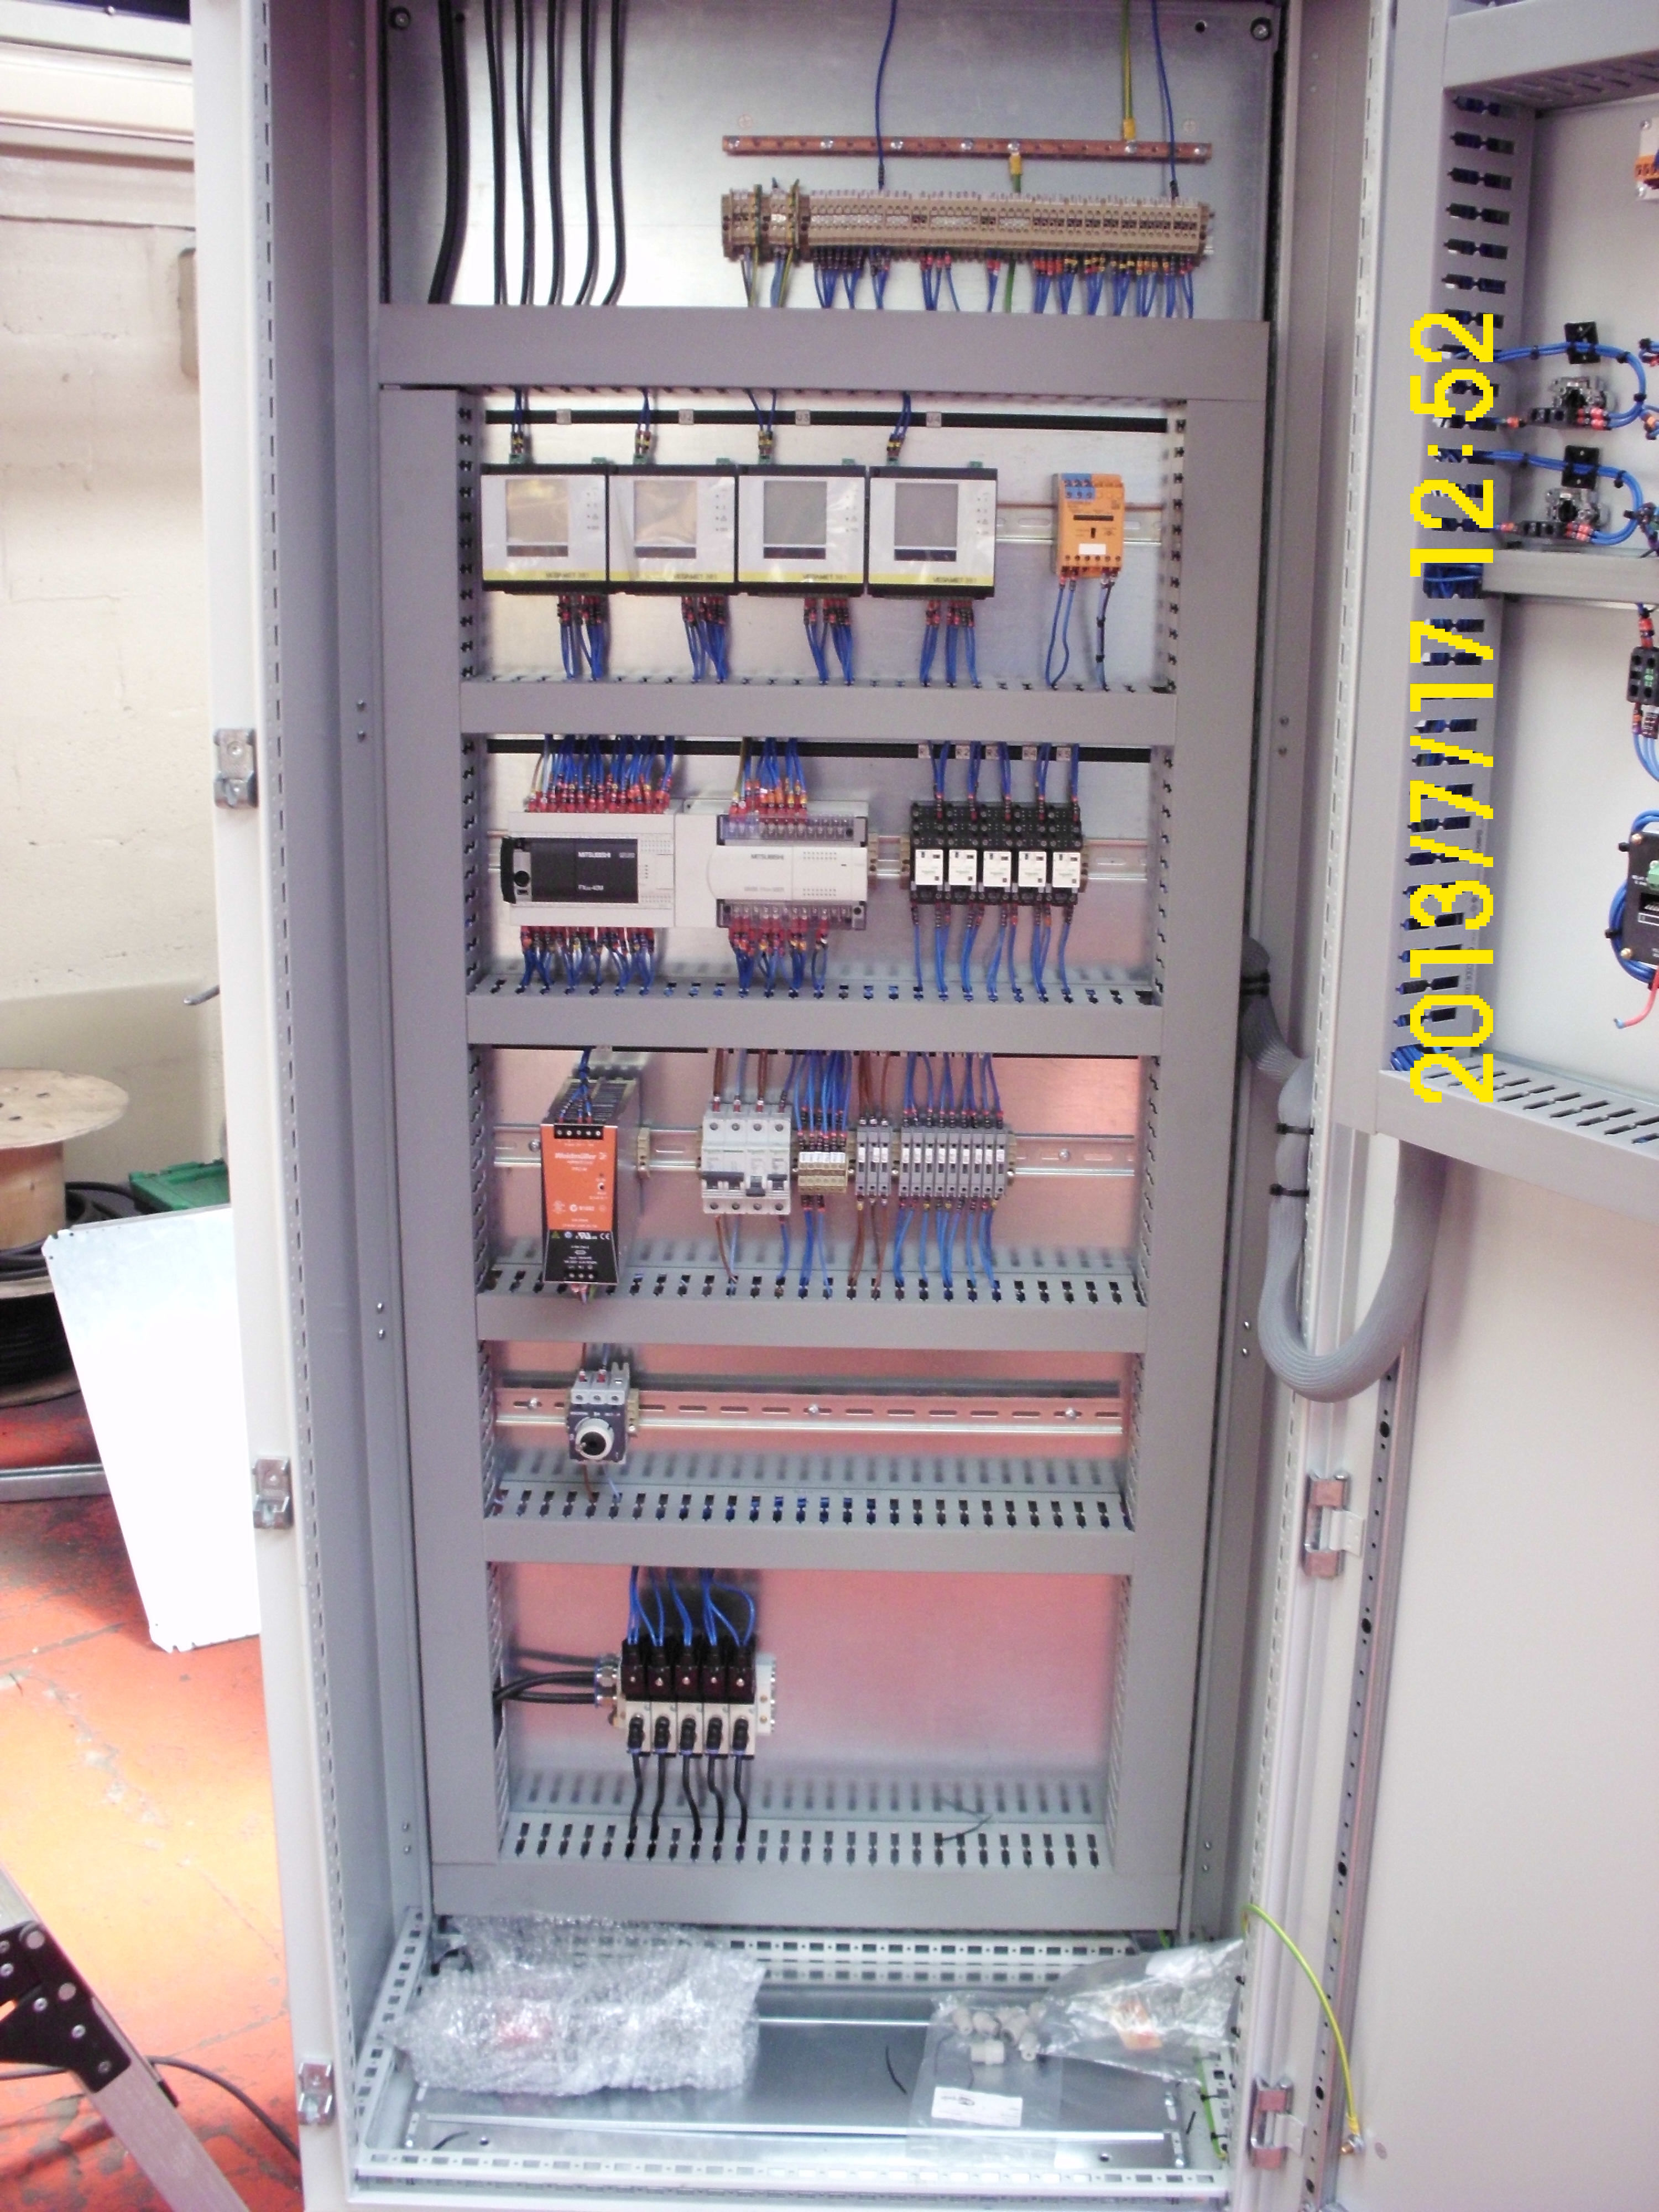 Industrial Control Systems PLC #1